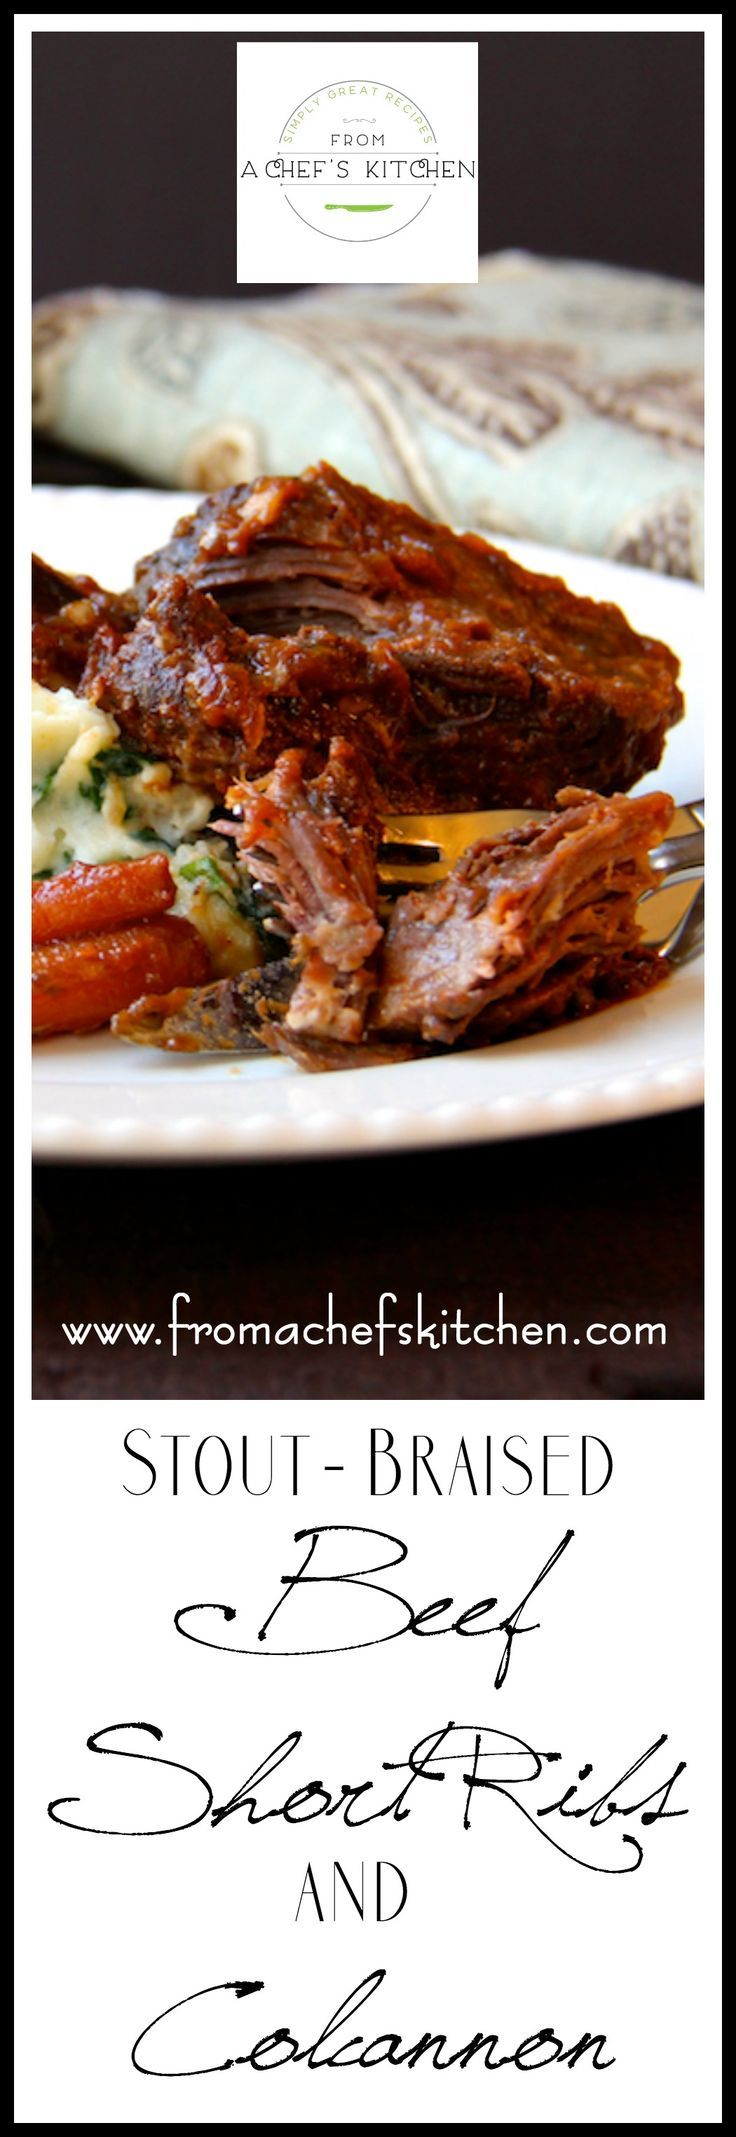 Irish-inspired Stout Braised Beef Short Ribs and Colcannon is the perfect dish for a St. Patrick's Day celebration!